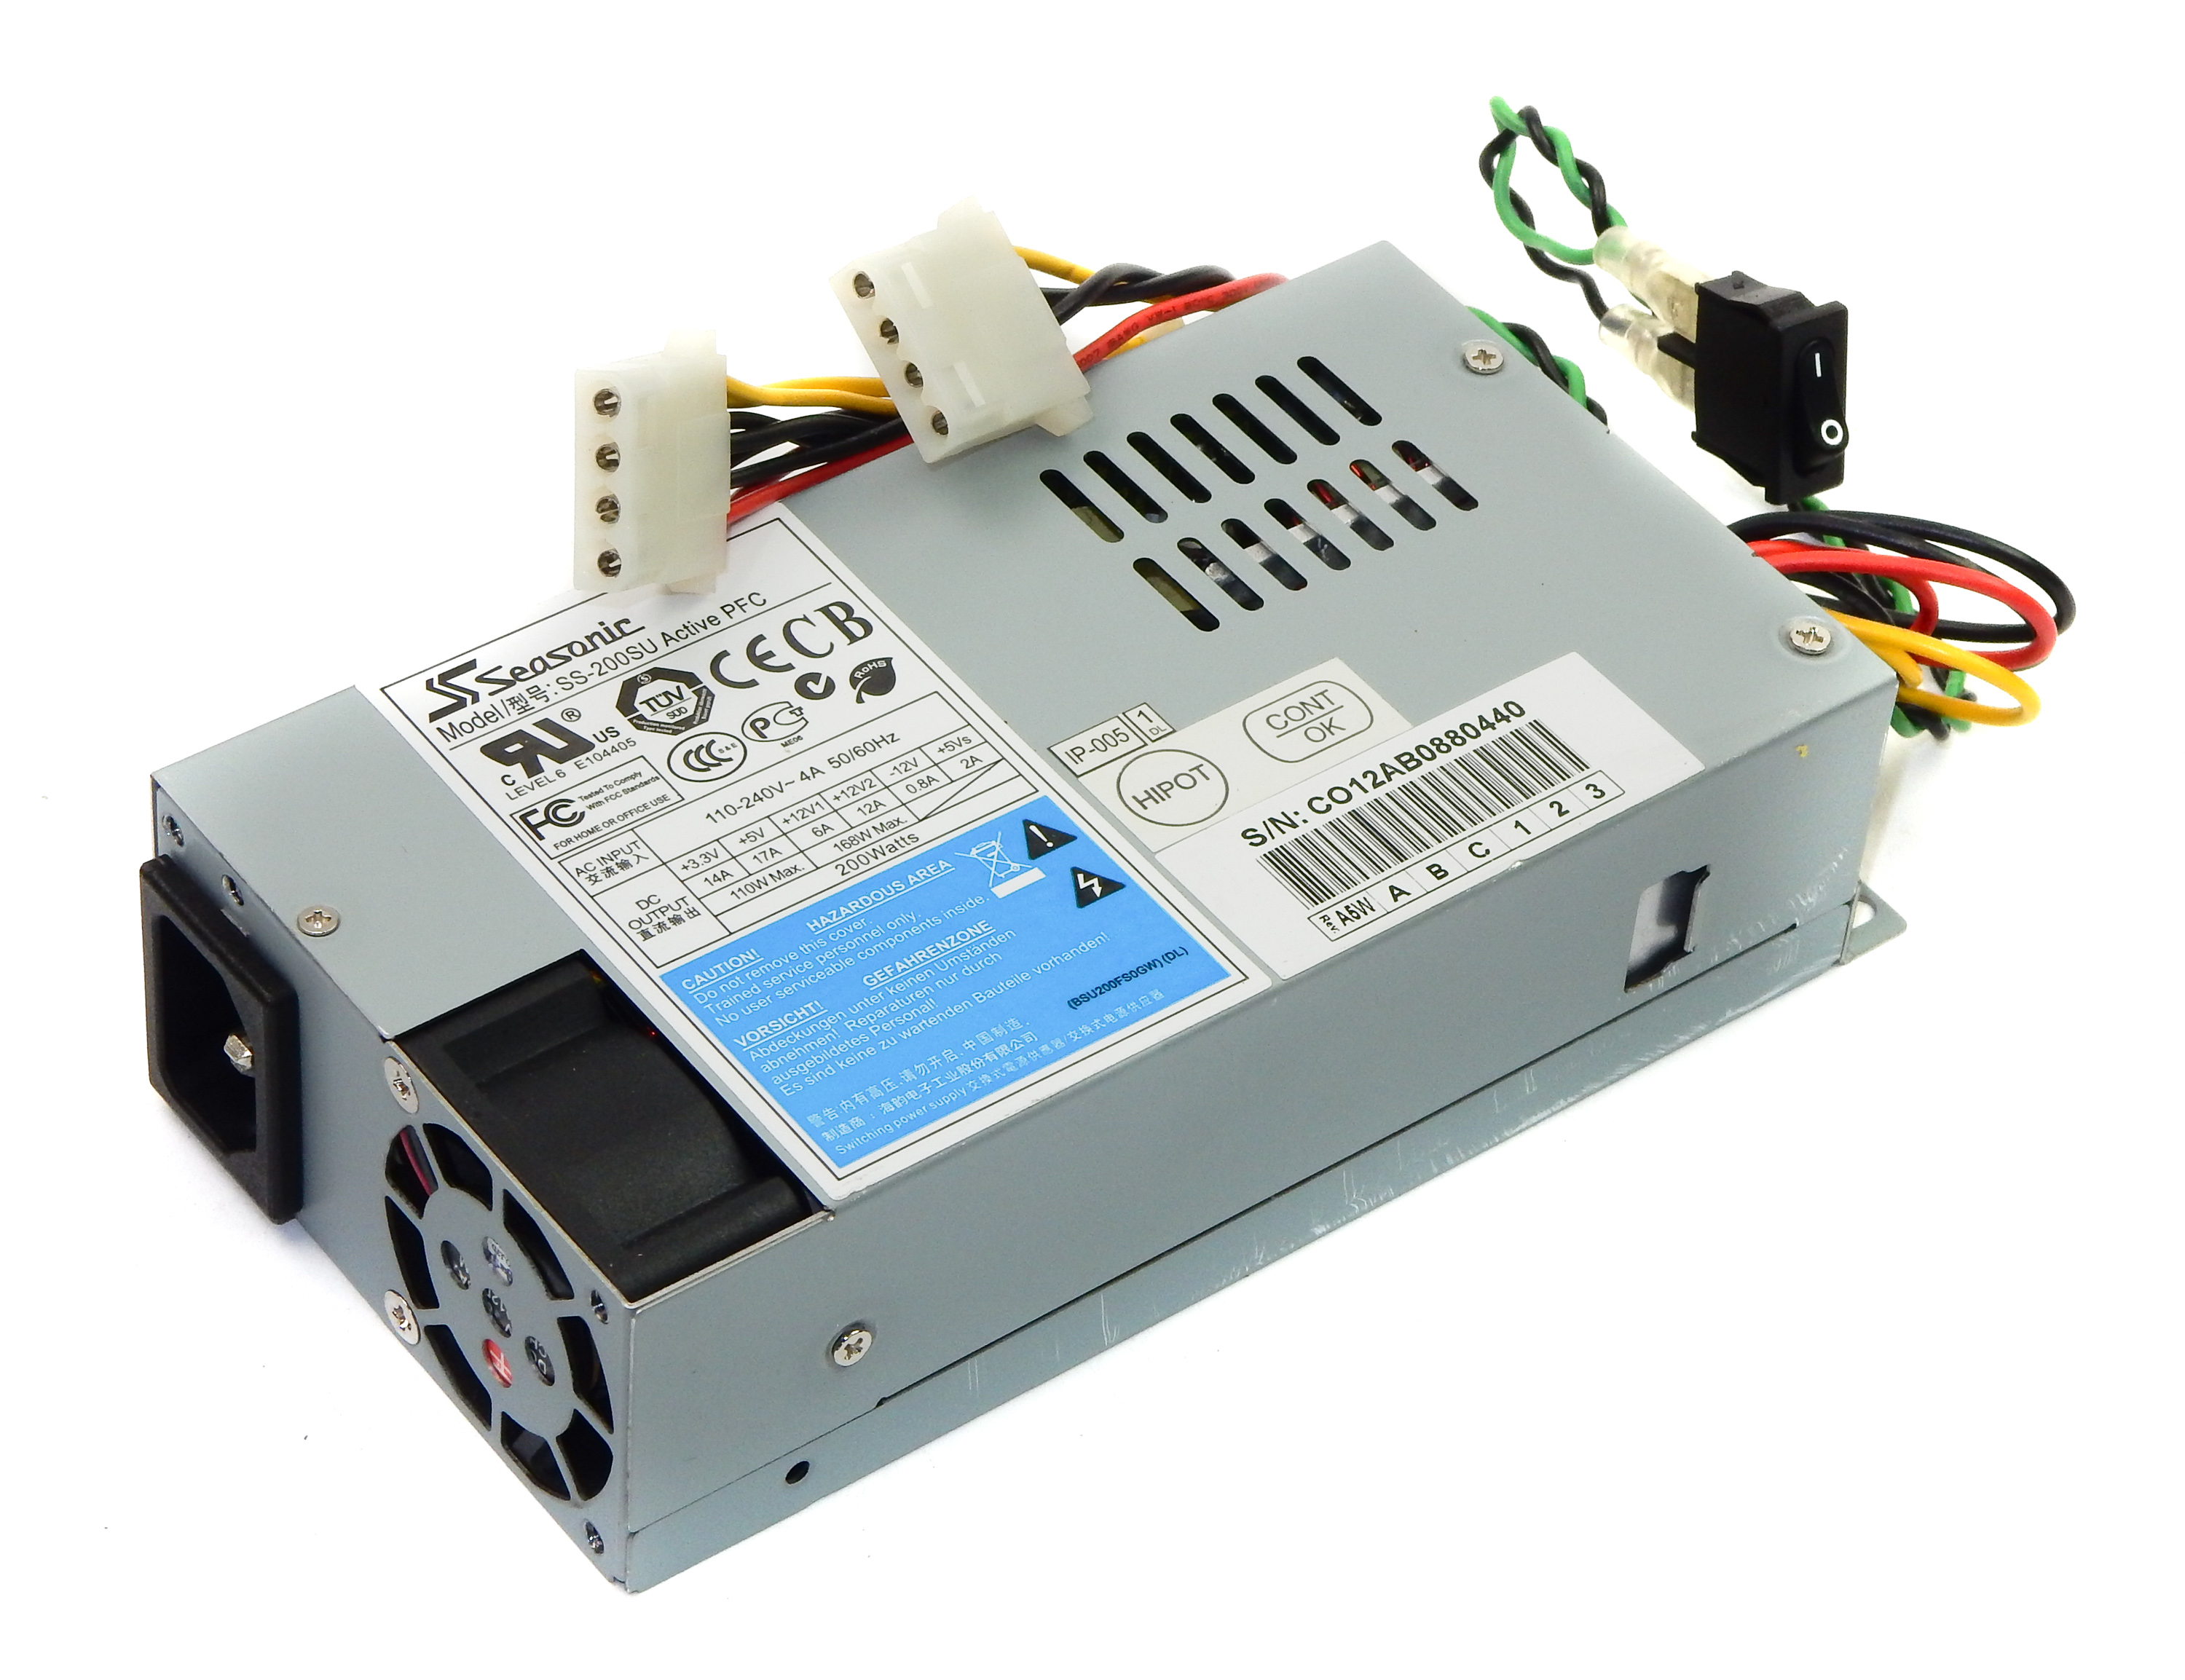 Seasonic SS-200SU Active PFC 200W Power Supply FlexATX f/ GSP-ES